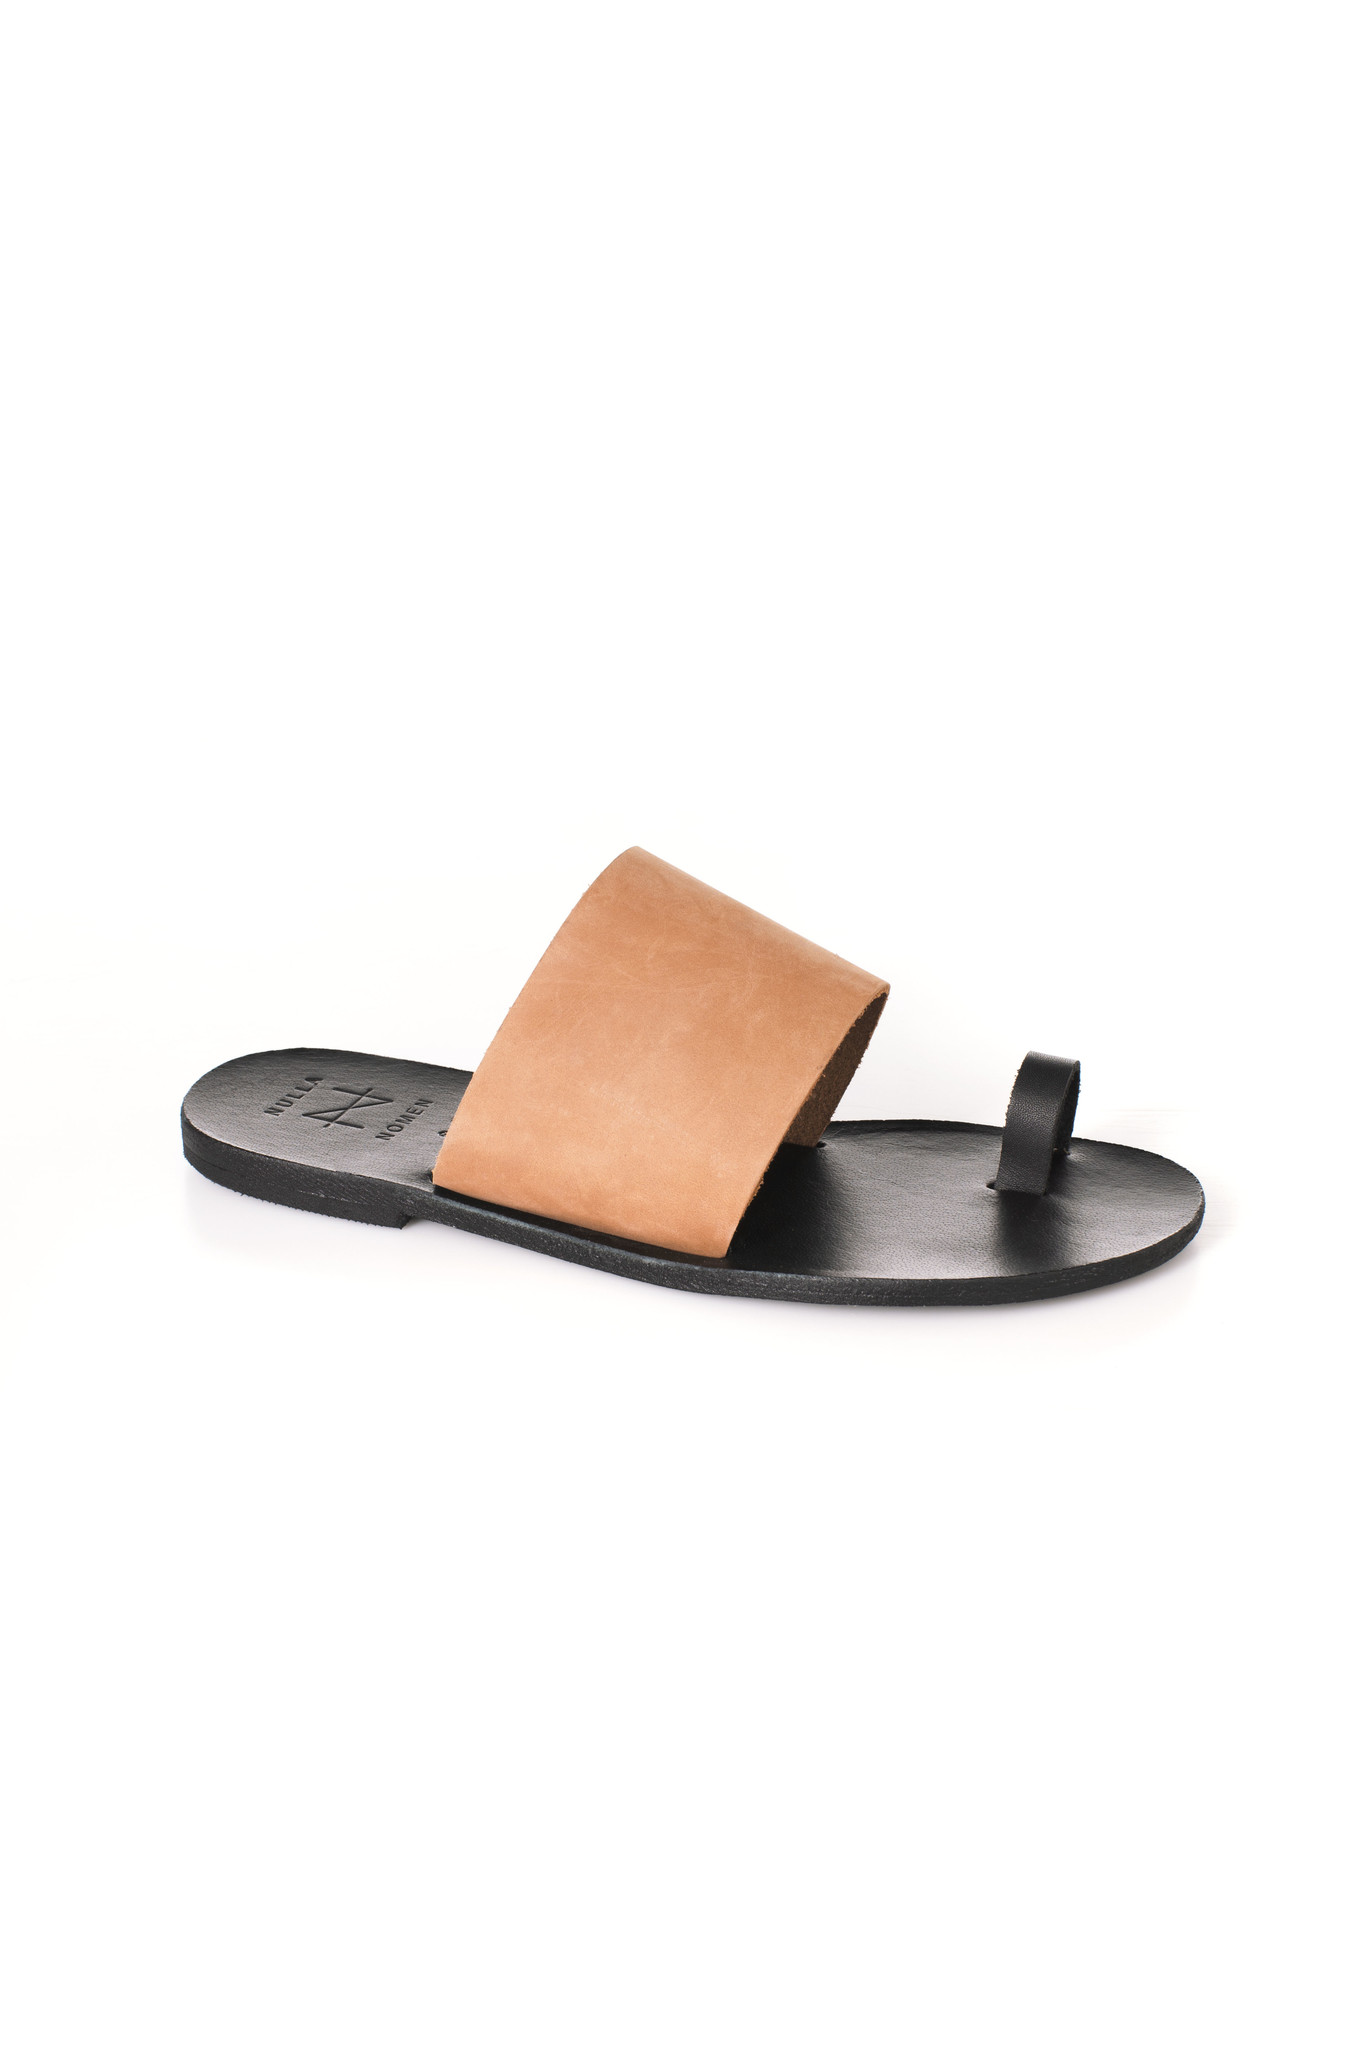 Nulla Nomen | Slipper Toe Strap Vegetable Tanned Leather-6